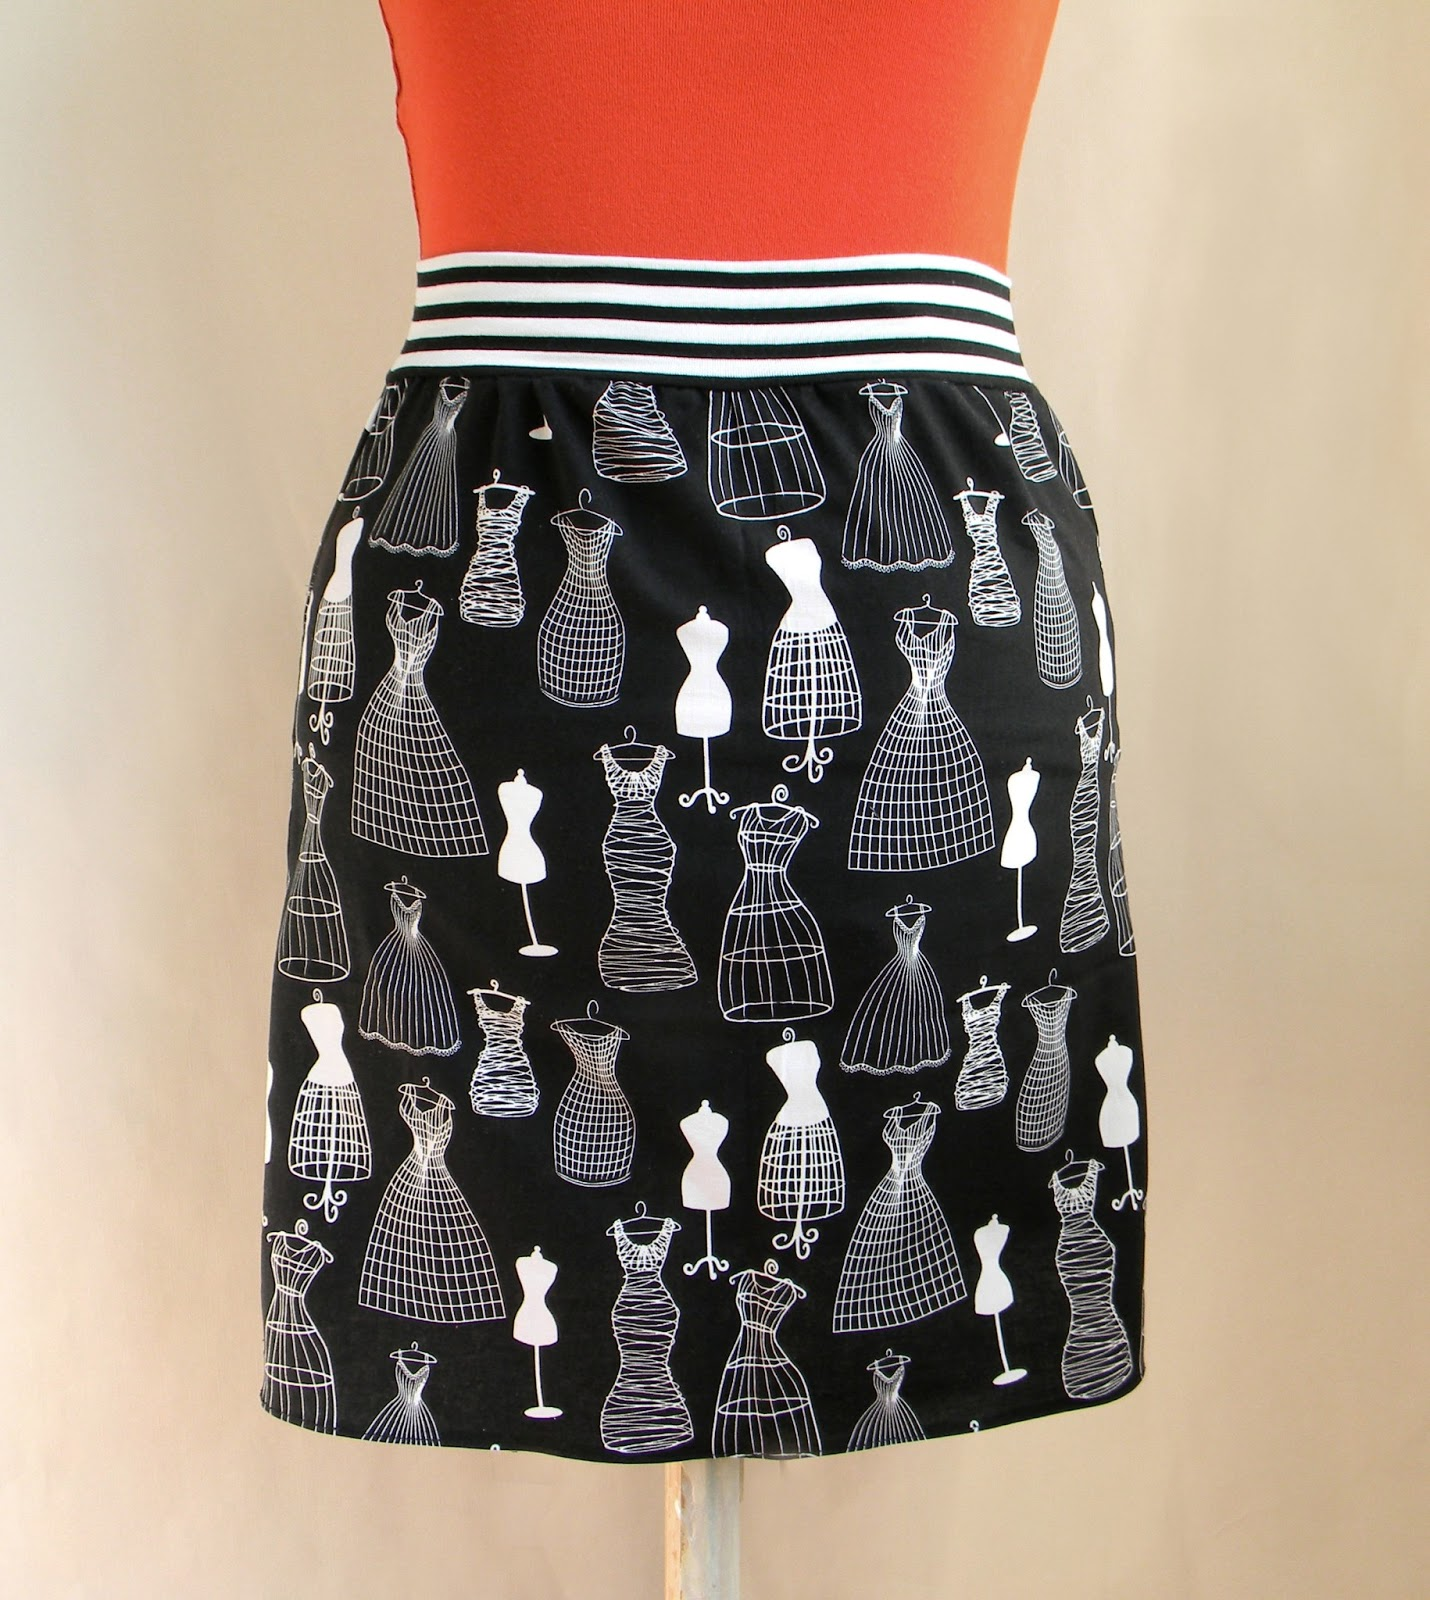 Unique Handmade Fashion Skirt Original Cotton Print